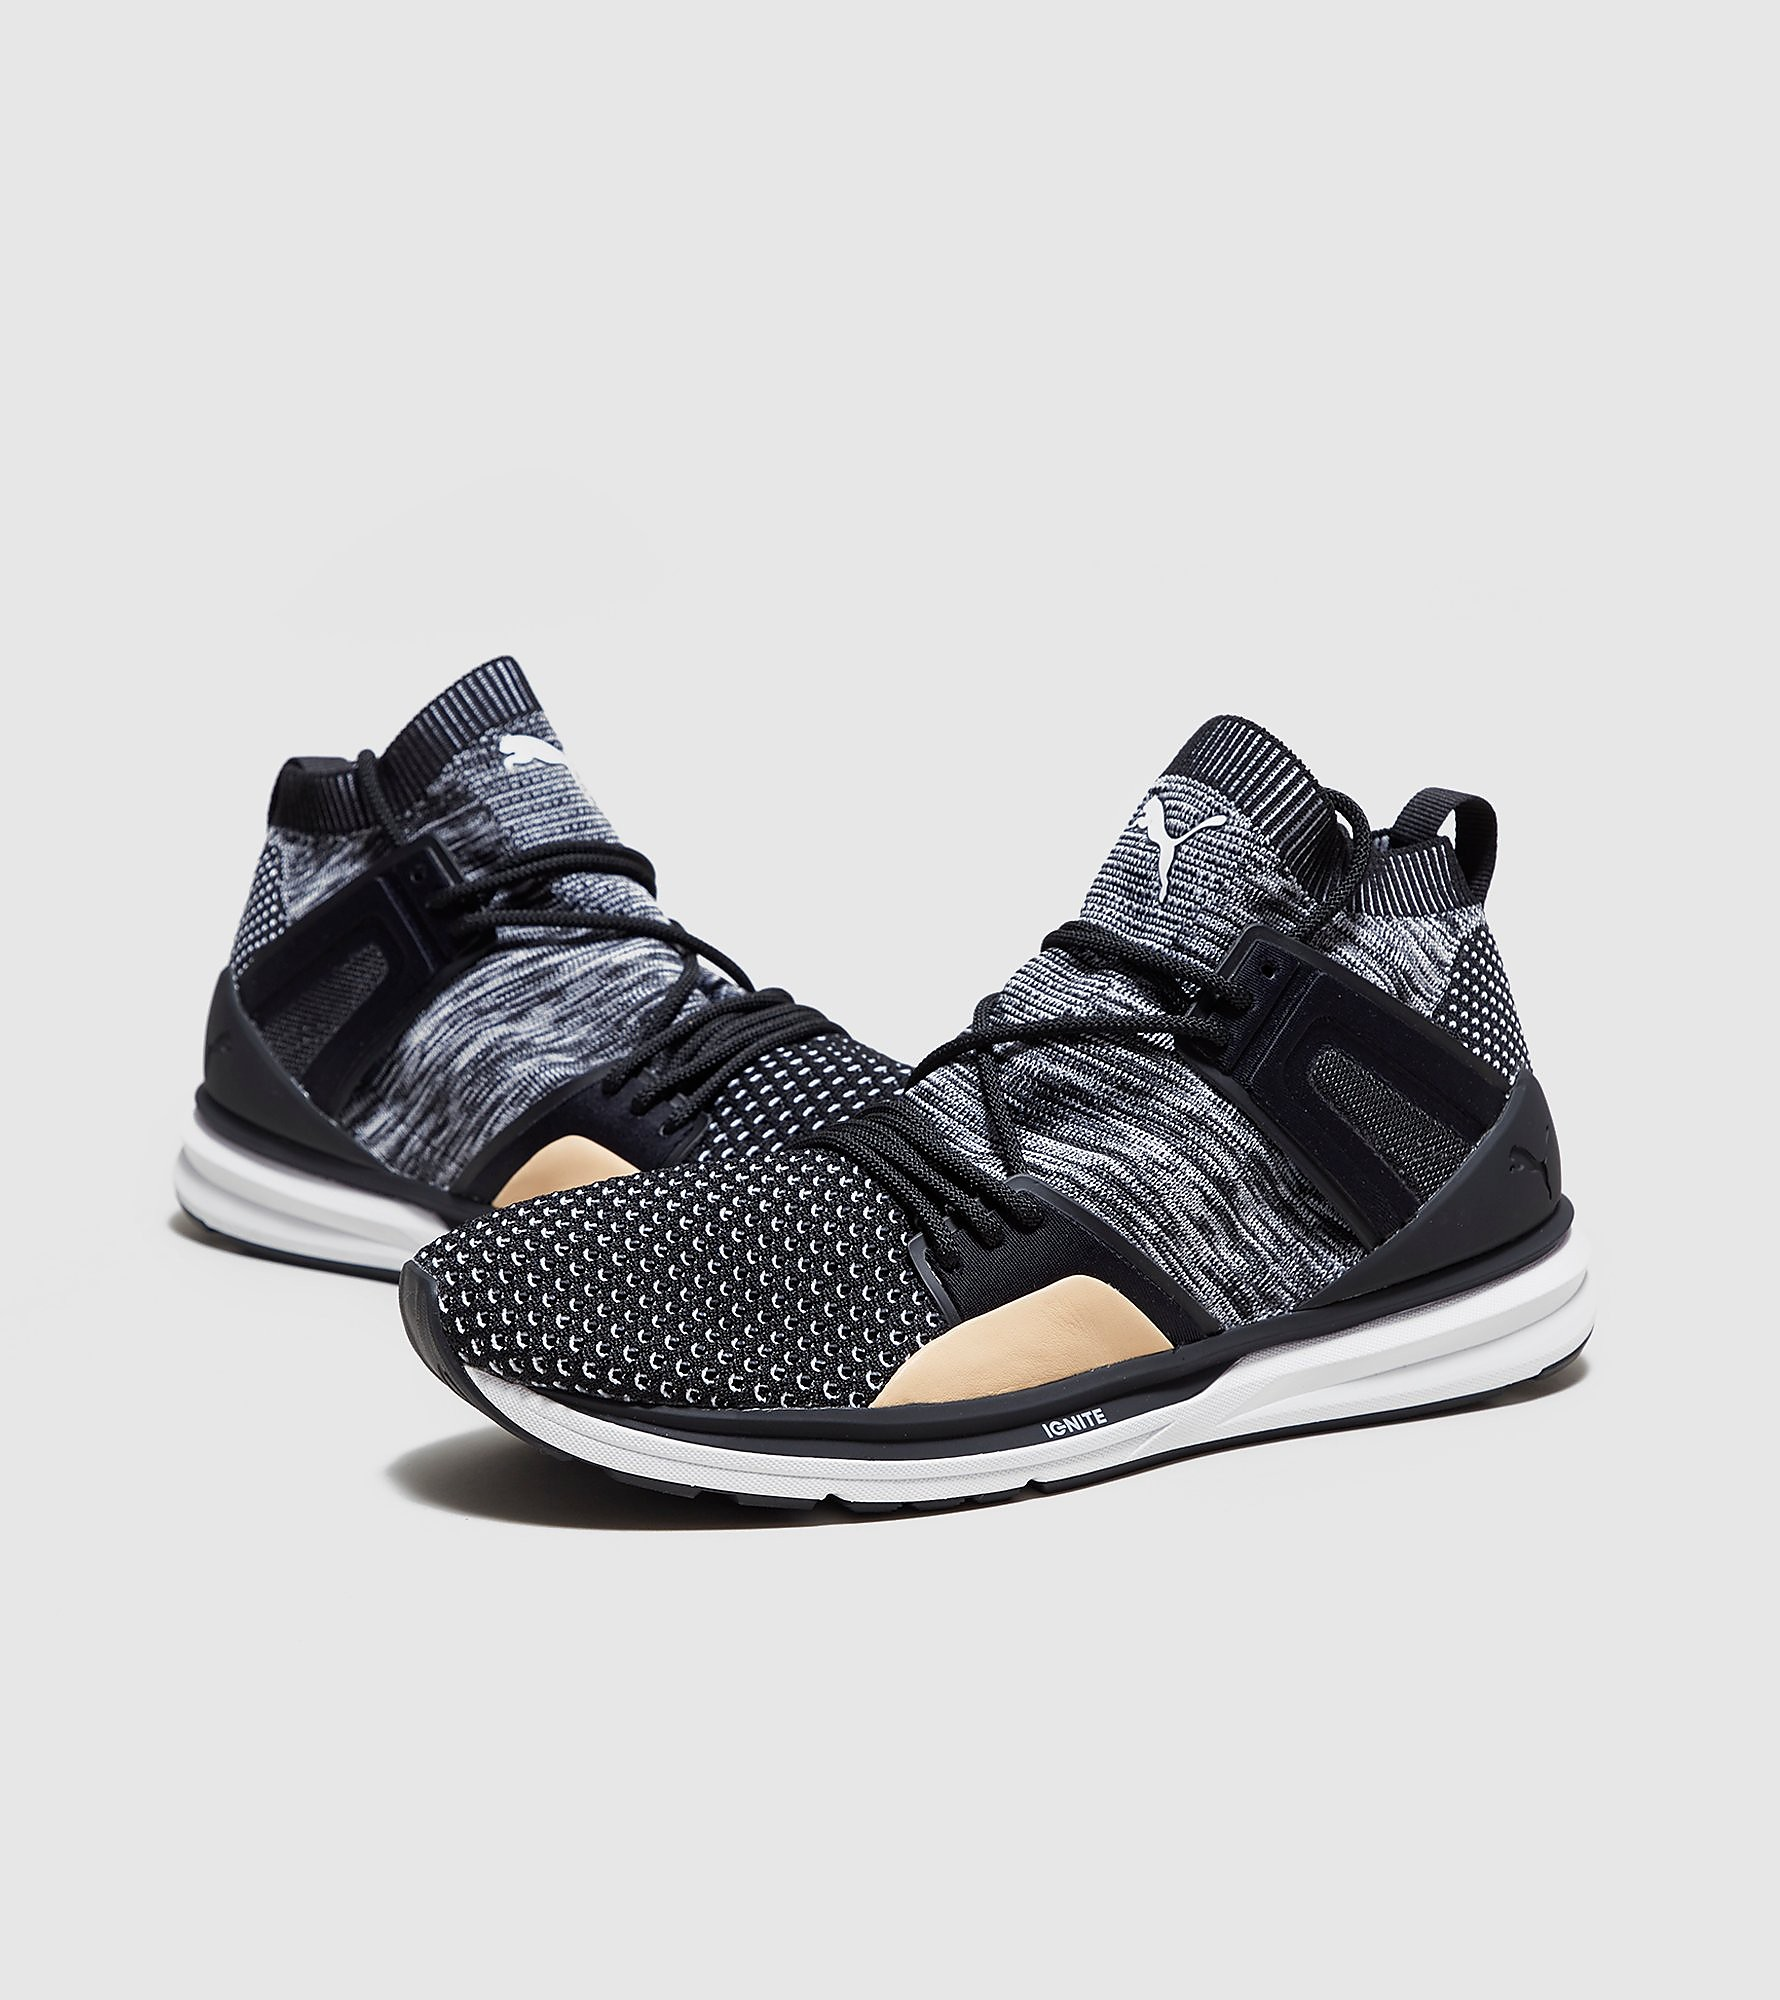 PUMA Blaze of Glory Limitless Evoknit